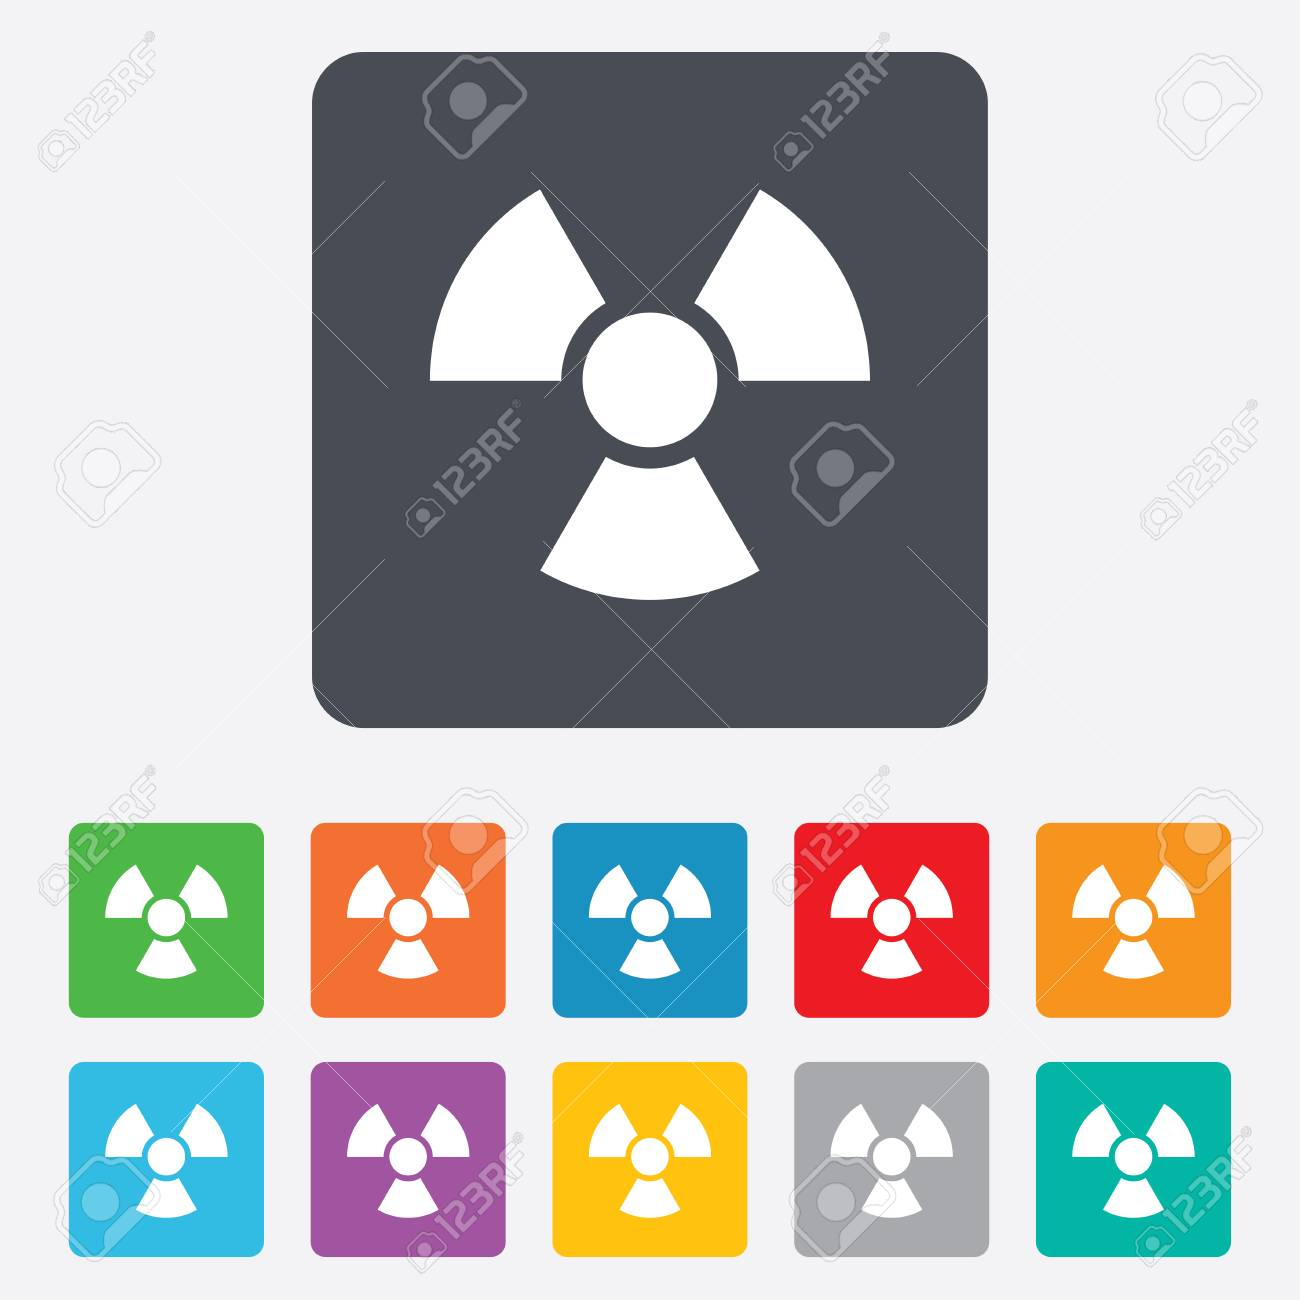 Radiation sign icon. Danger symbol. Rounded squares 11 buttons. Stock Photo - 27797187